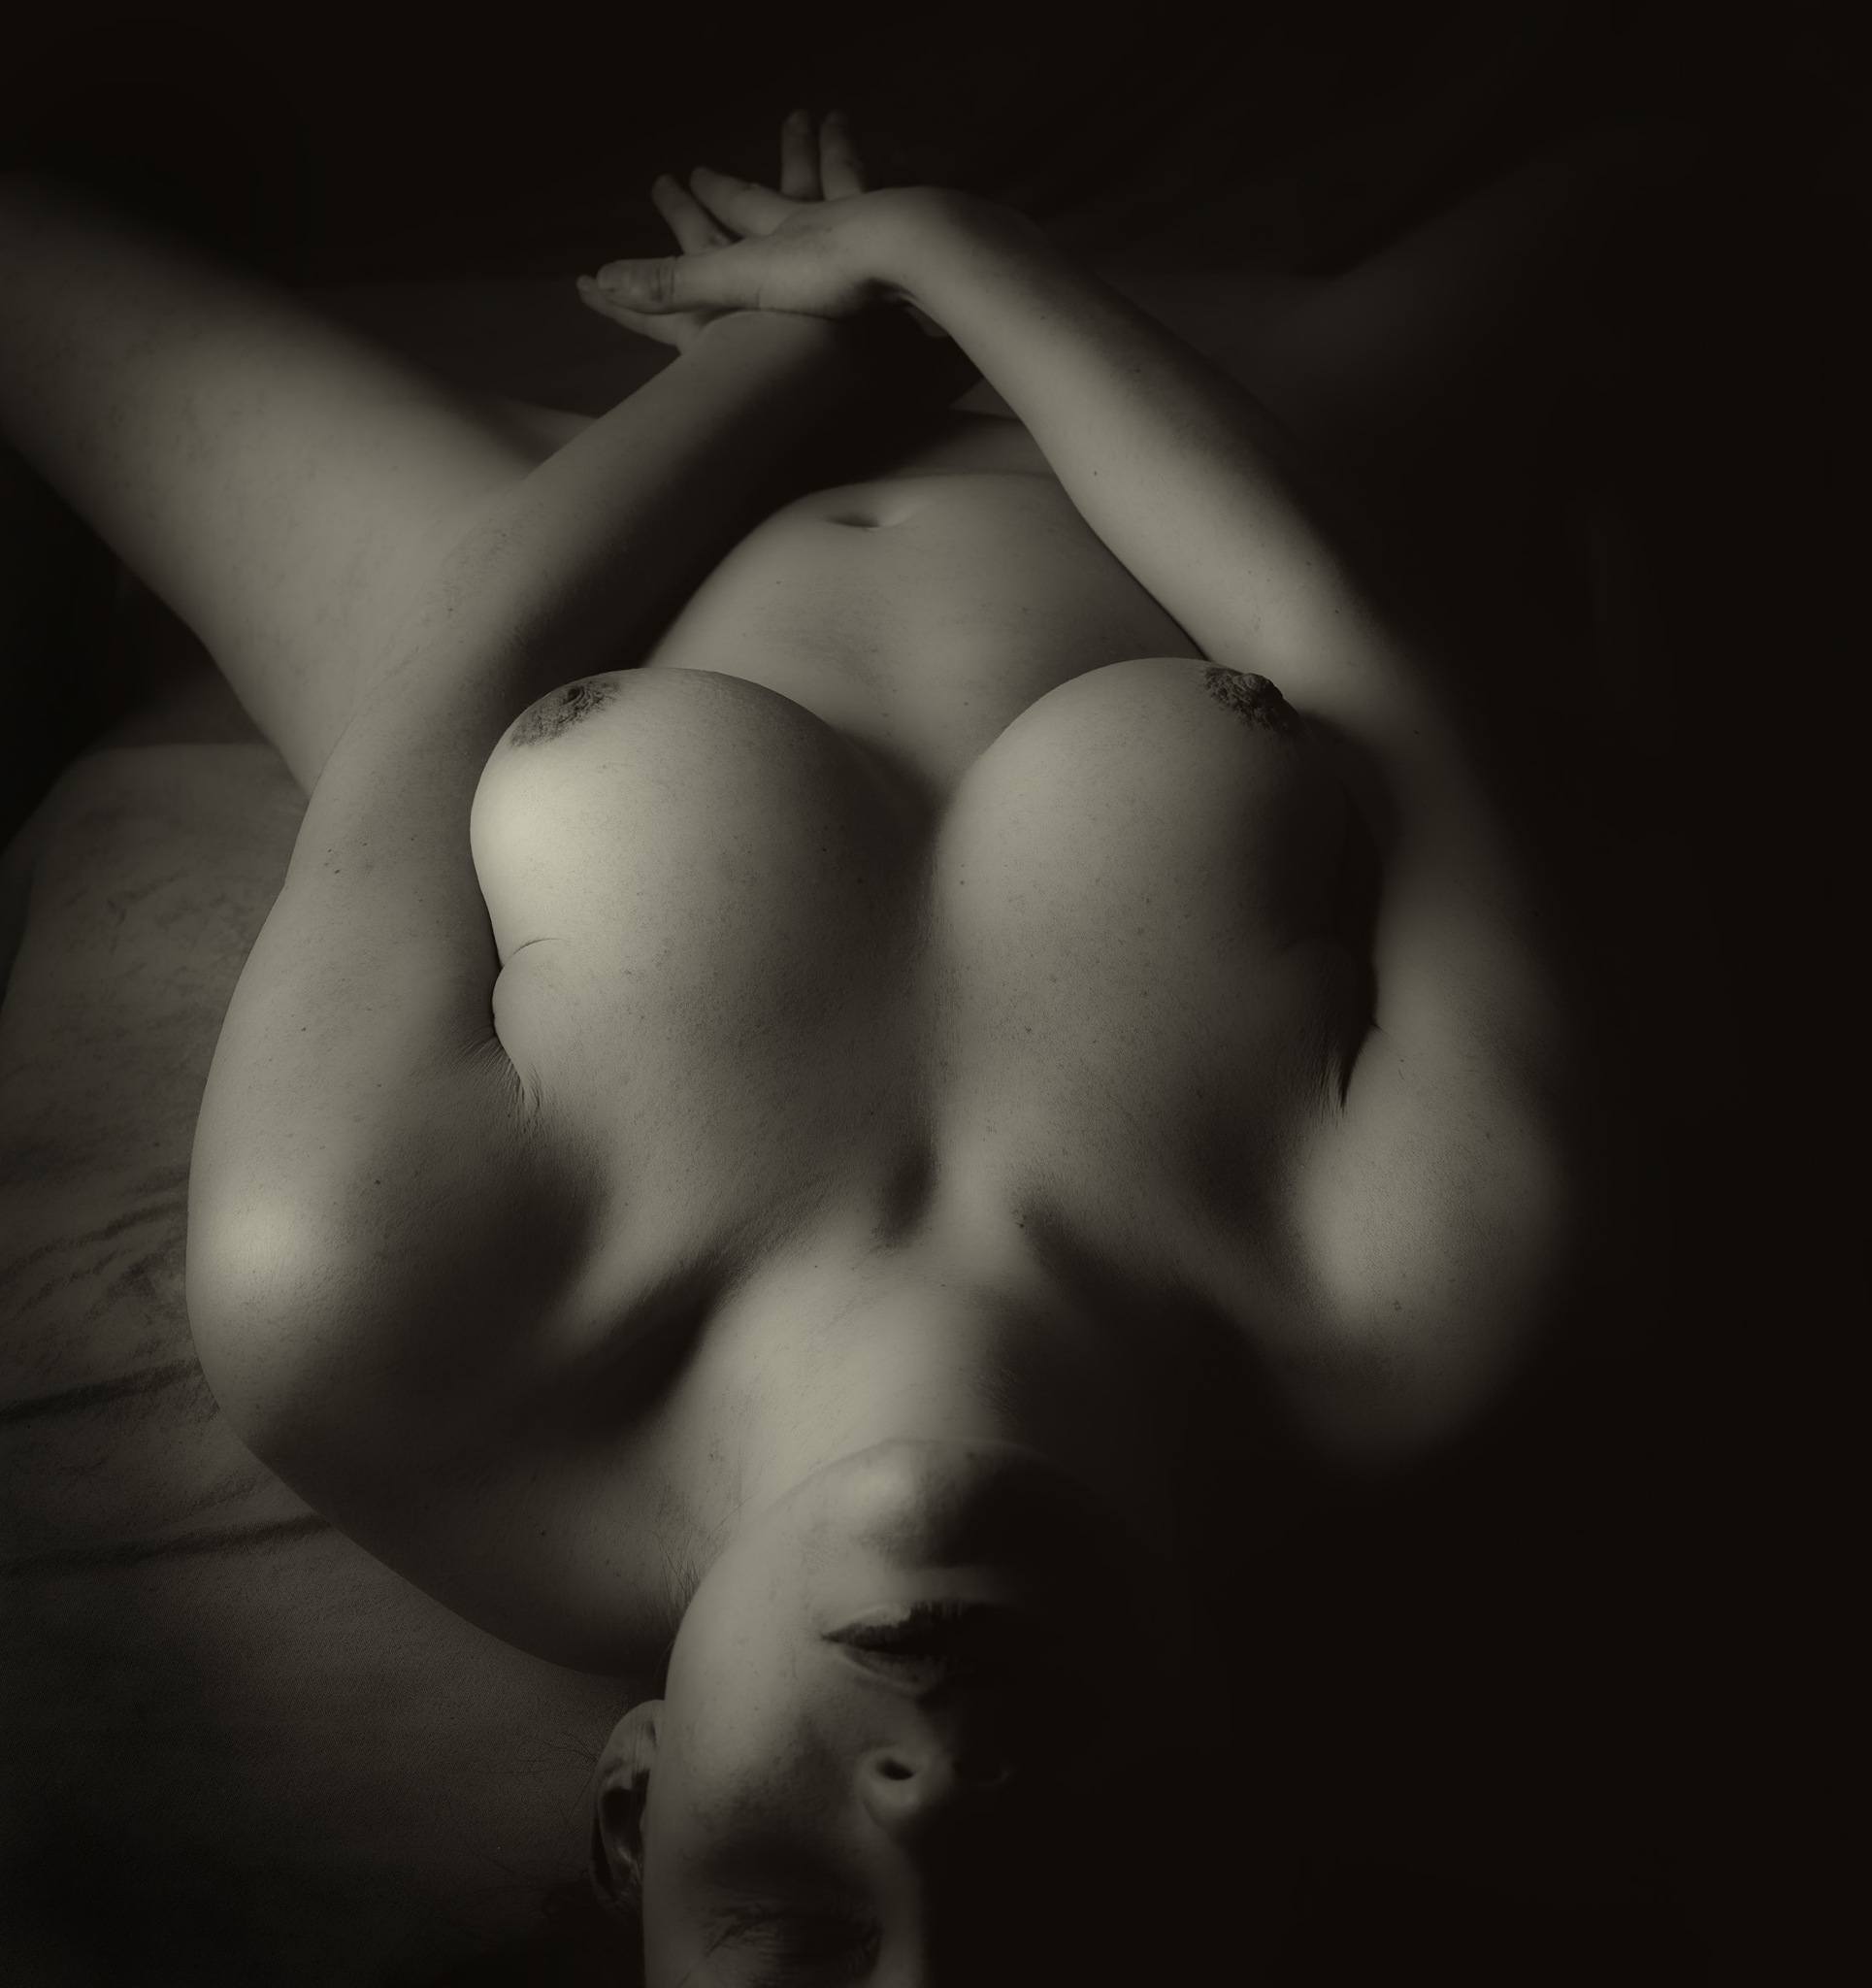 Concupiscence  by Pixforce